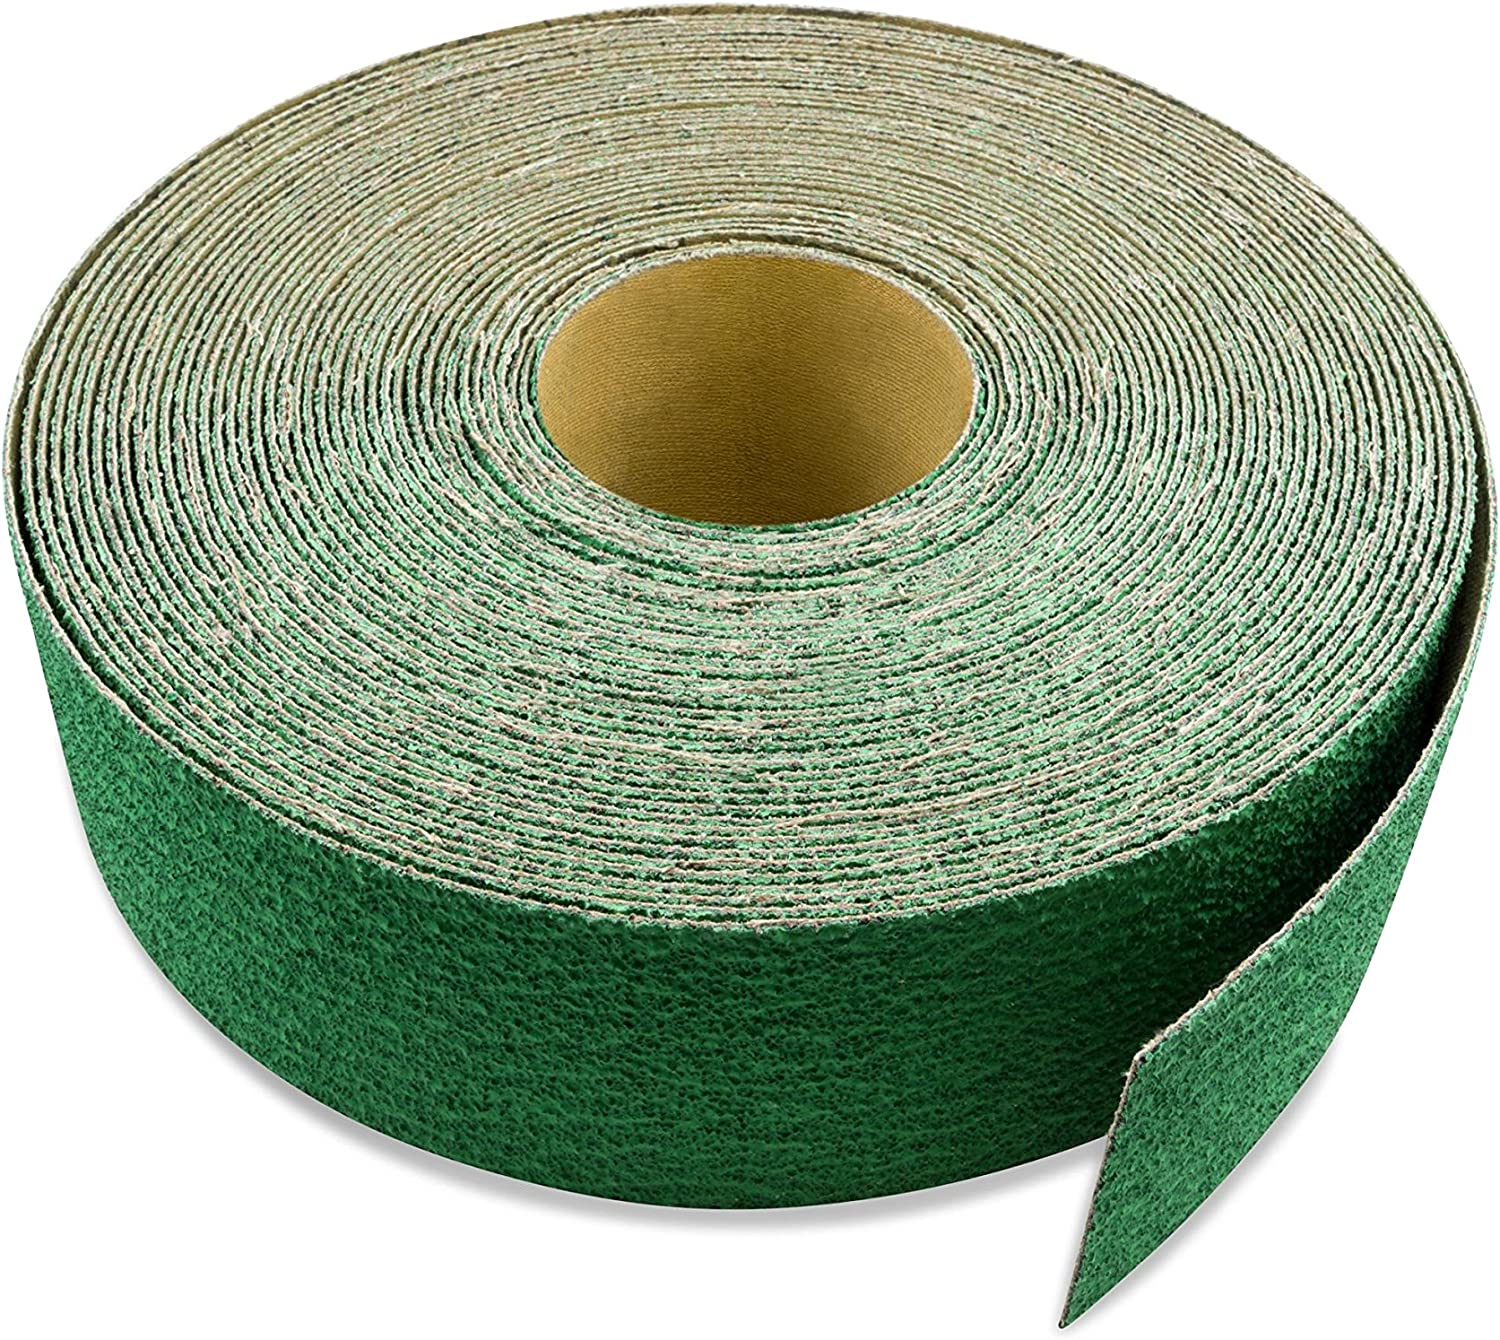 3 inch X 70 FT 100 Grit Zirconia Woodworking Drum Sander Roll, Cut Strips to Length